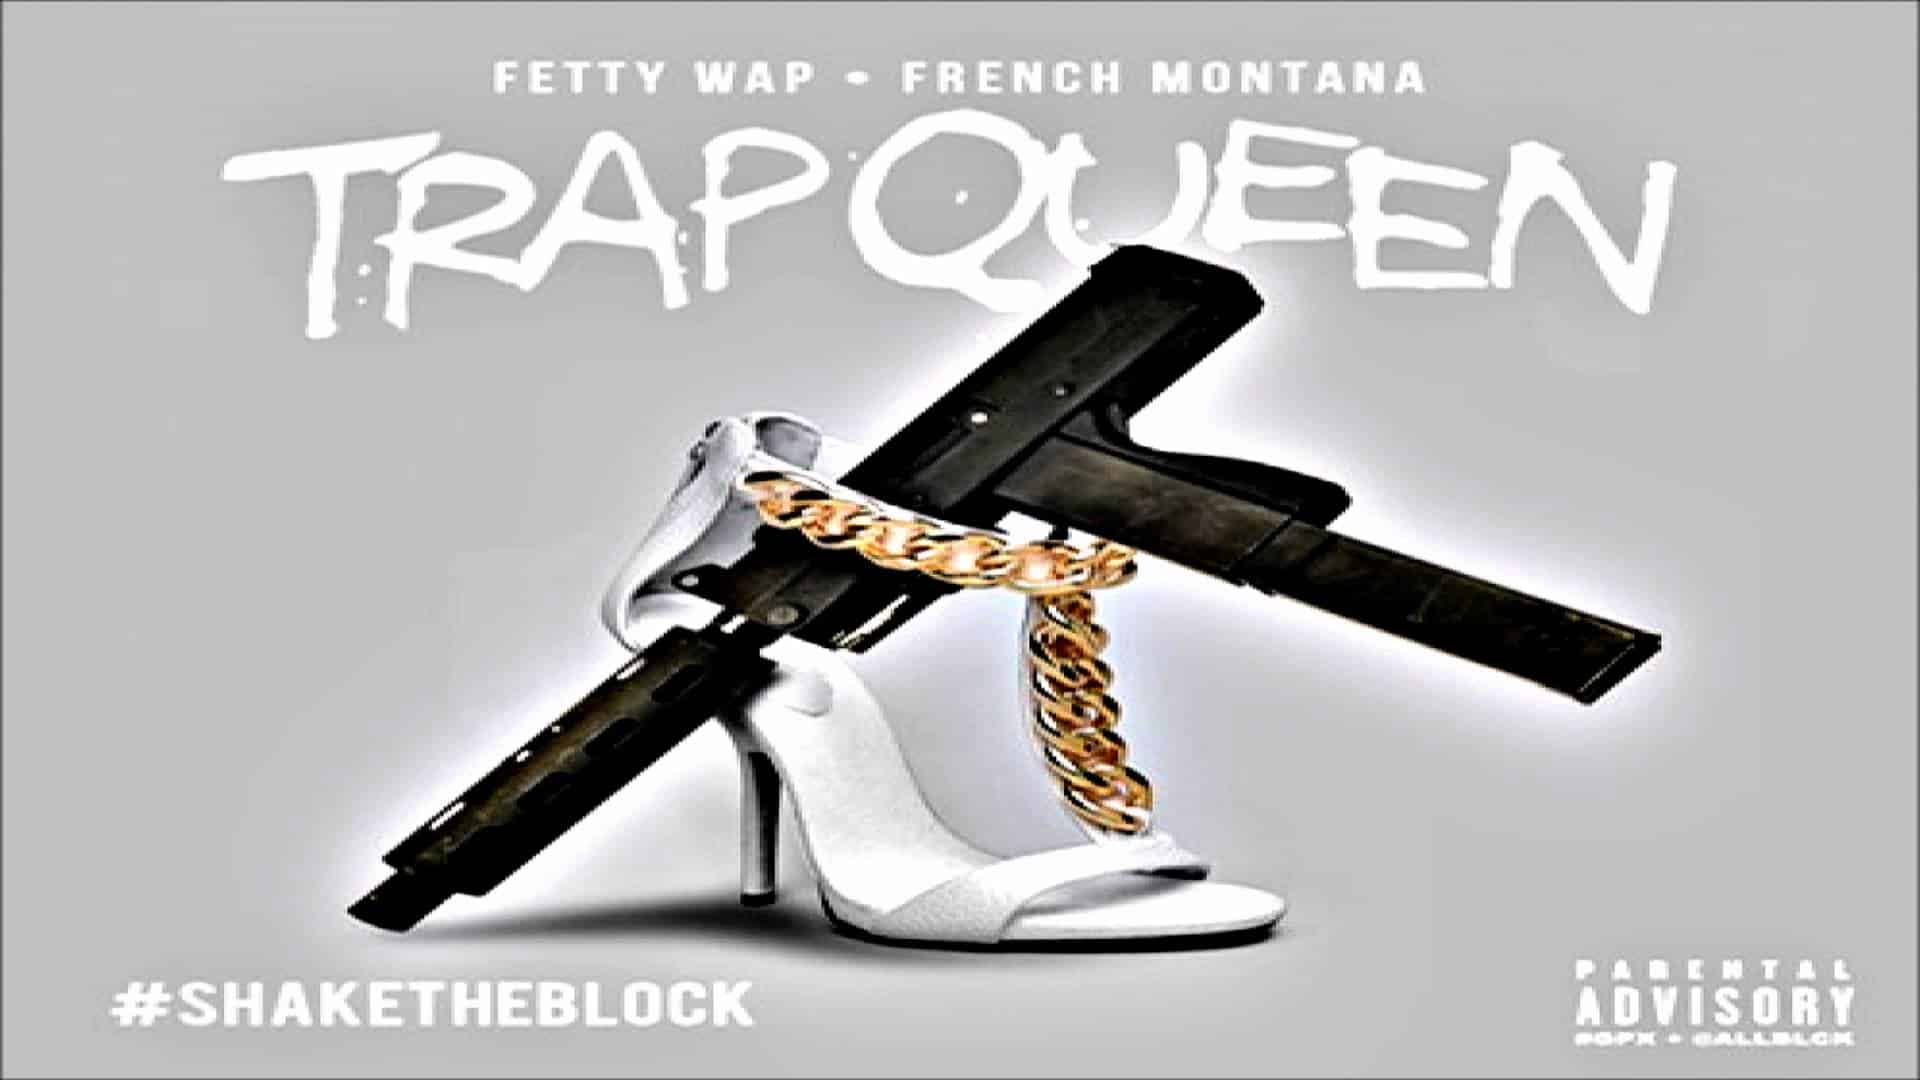 Fetty Wap (album) - Wikipedia